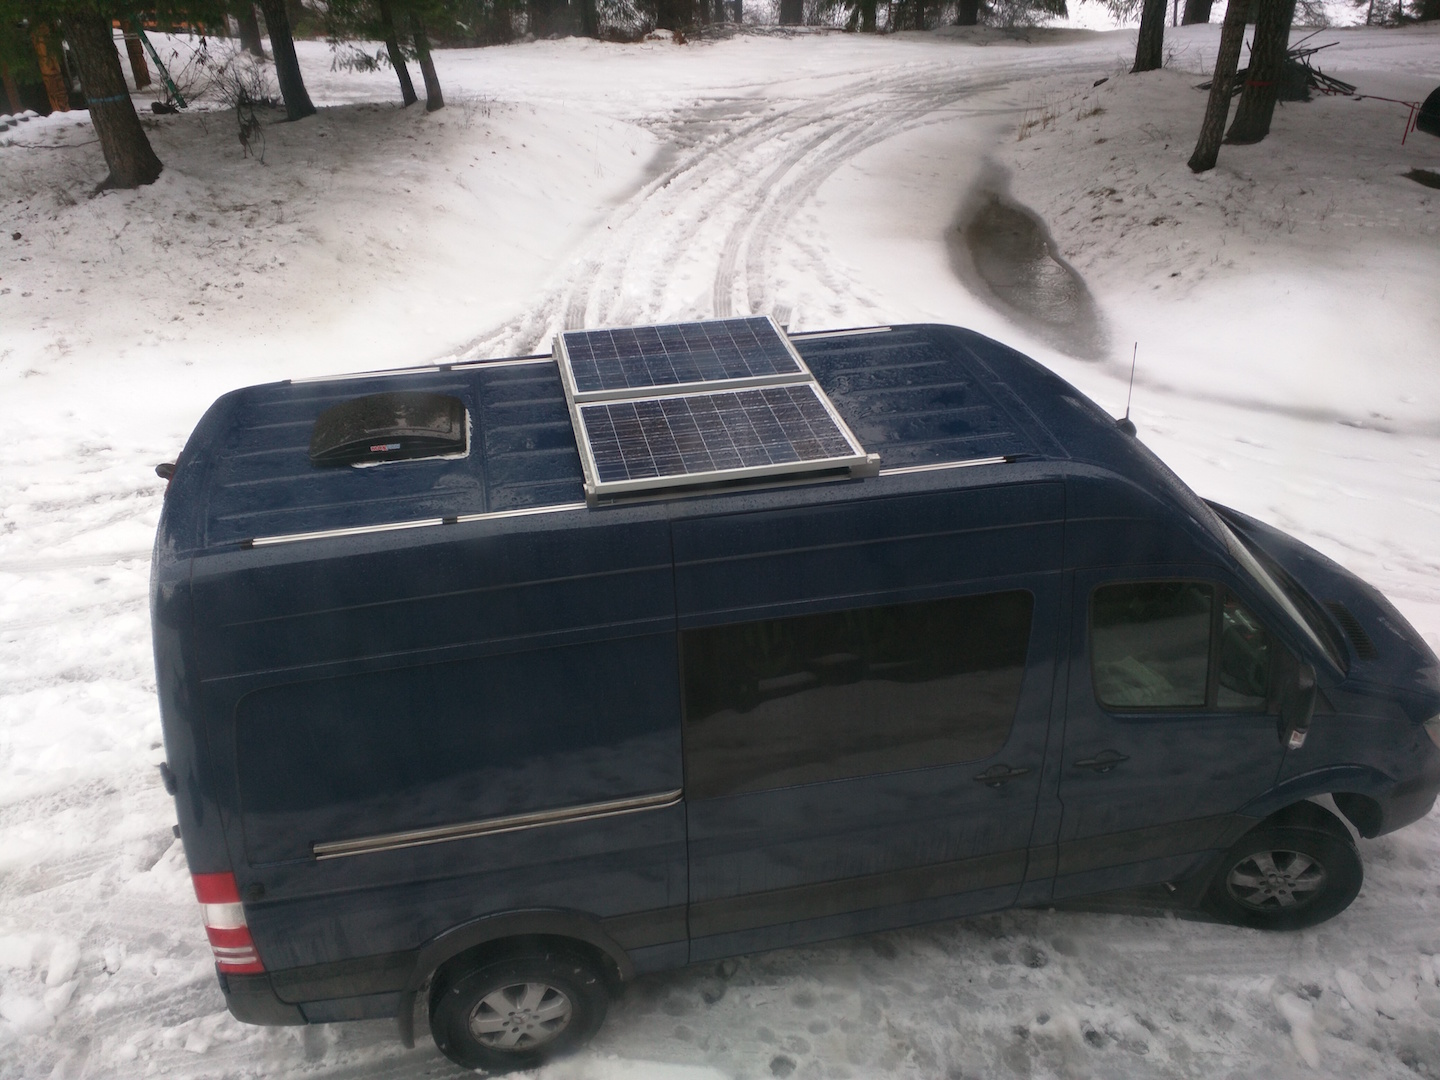 Converting A Sprinter Van To Camper Installing Solar Panels And Rv Systems That Pretty Much Sums Up Our Panel Installation Experience I Think The Finished Product Looks Good Certainly Functions Very Well